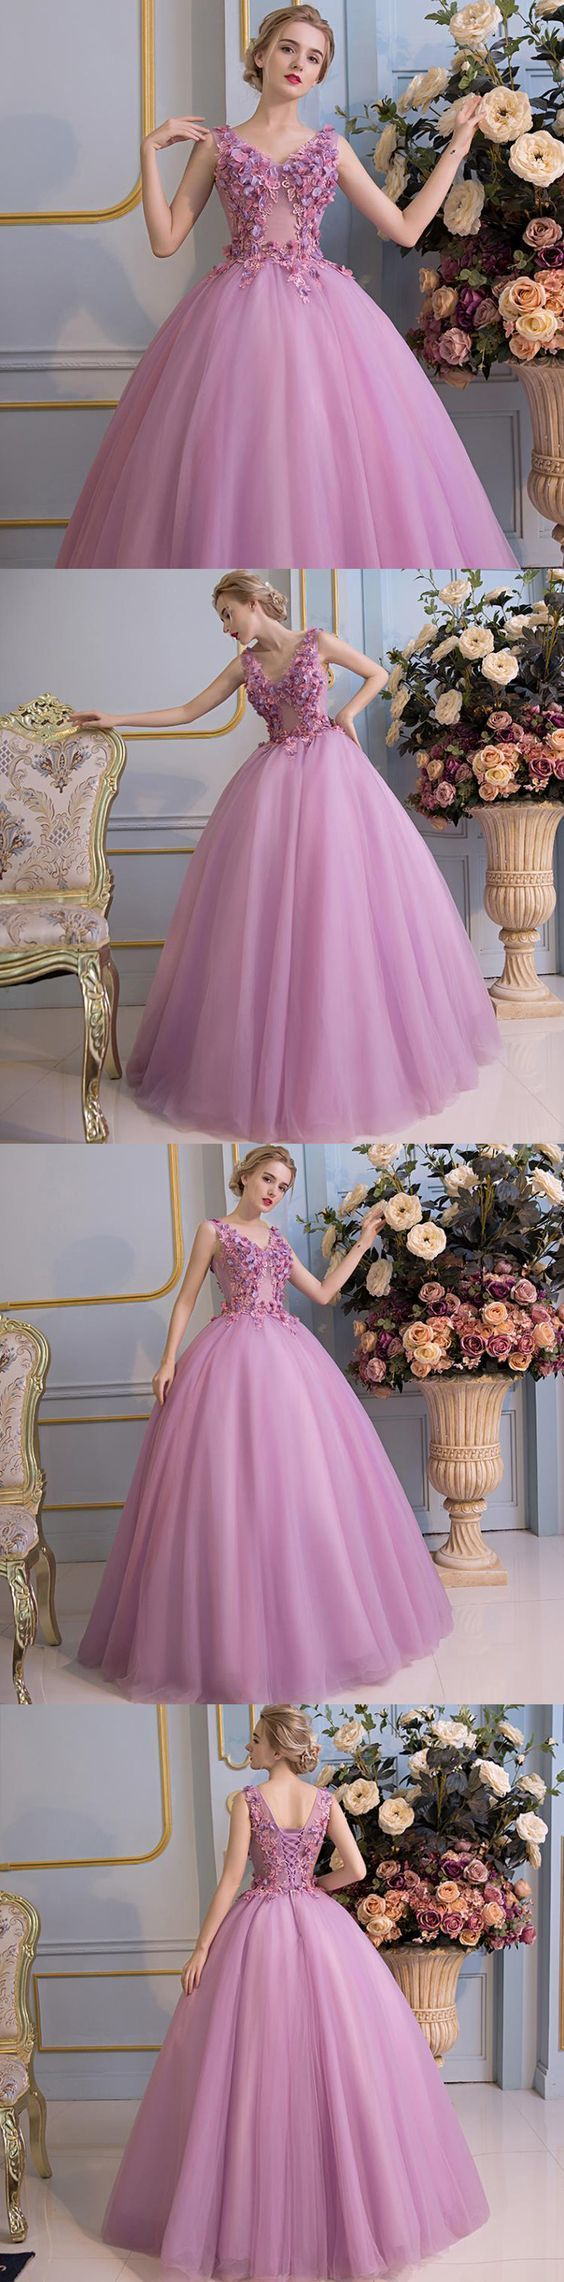 Princess Gorgeous Purple Prom Dress,Handmade Flowers Lace Up Back Ball Gown Prom